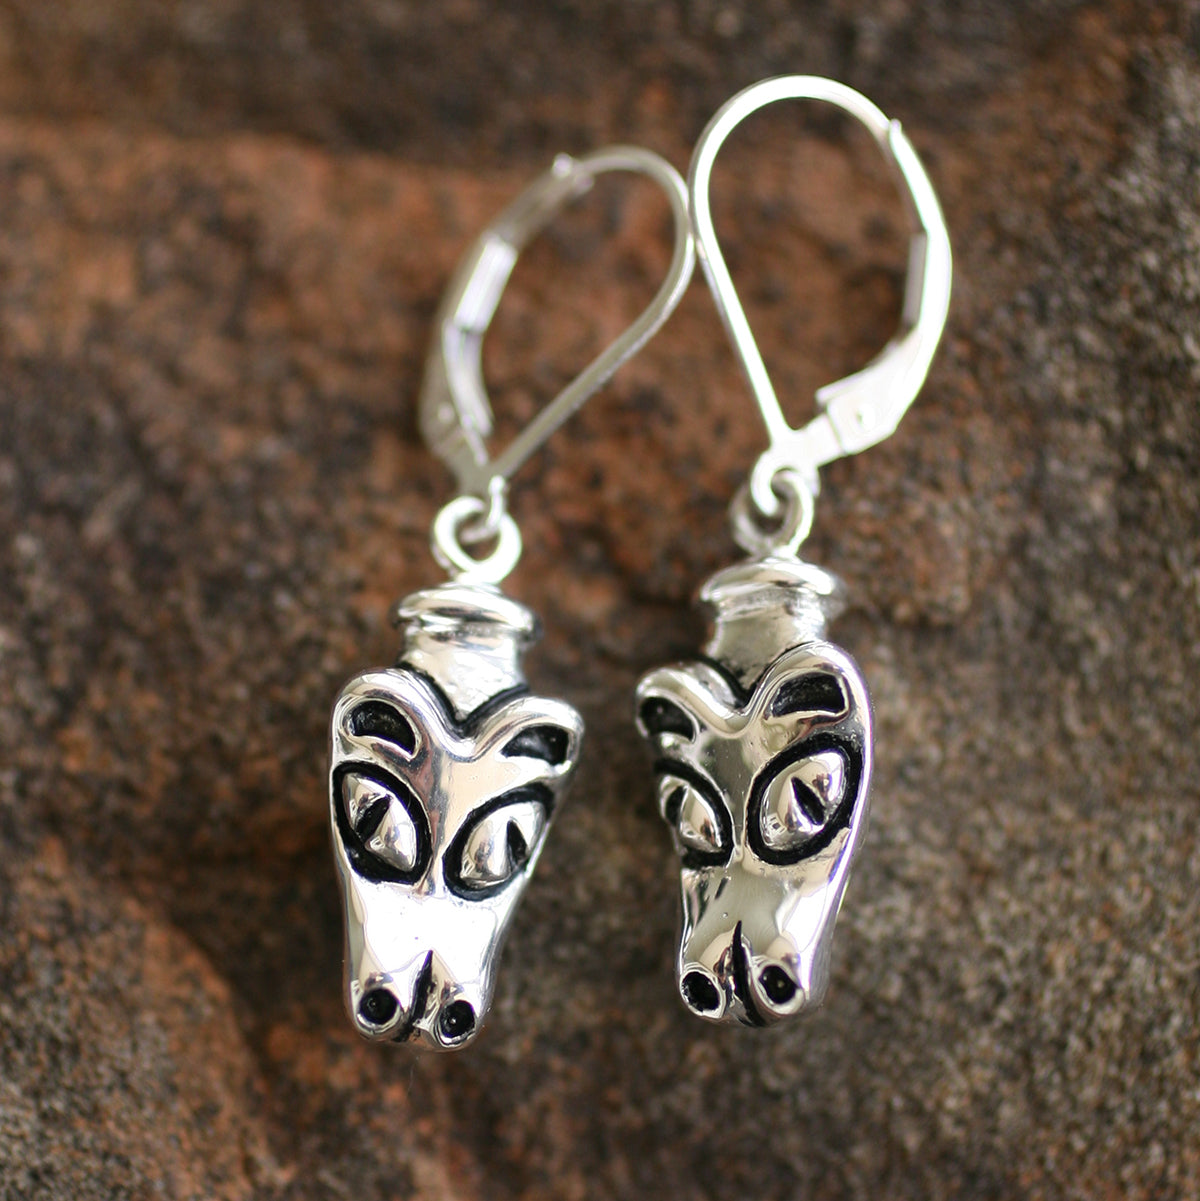 Native Wolf Earrings | Upcycled, Recycled, Repurposed, Reimagined | Changing Tides